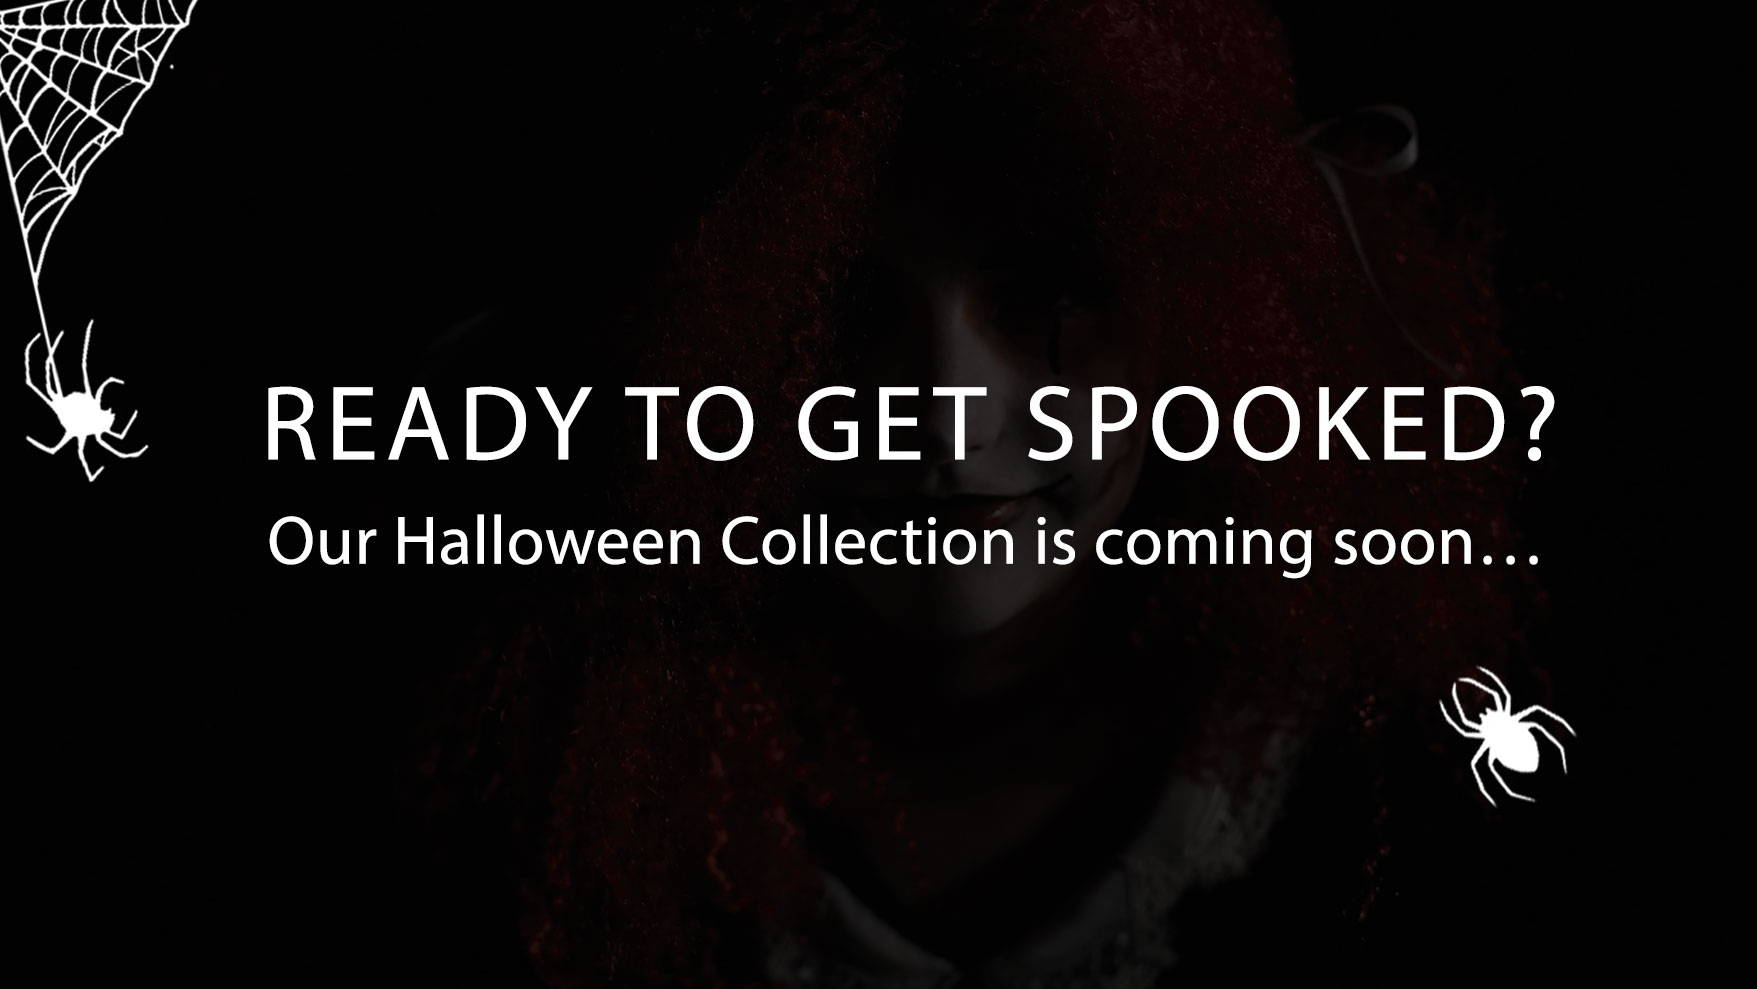 Ready to get spooked? Our Halloween Collection is comig soon